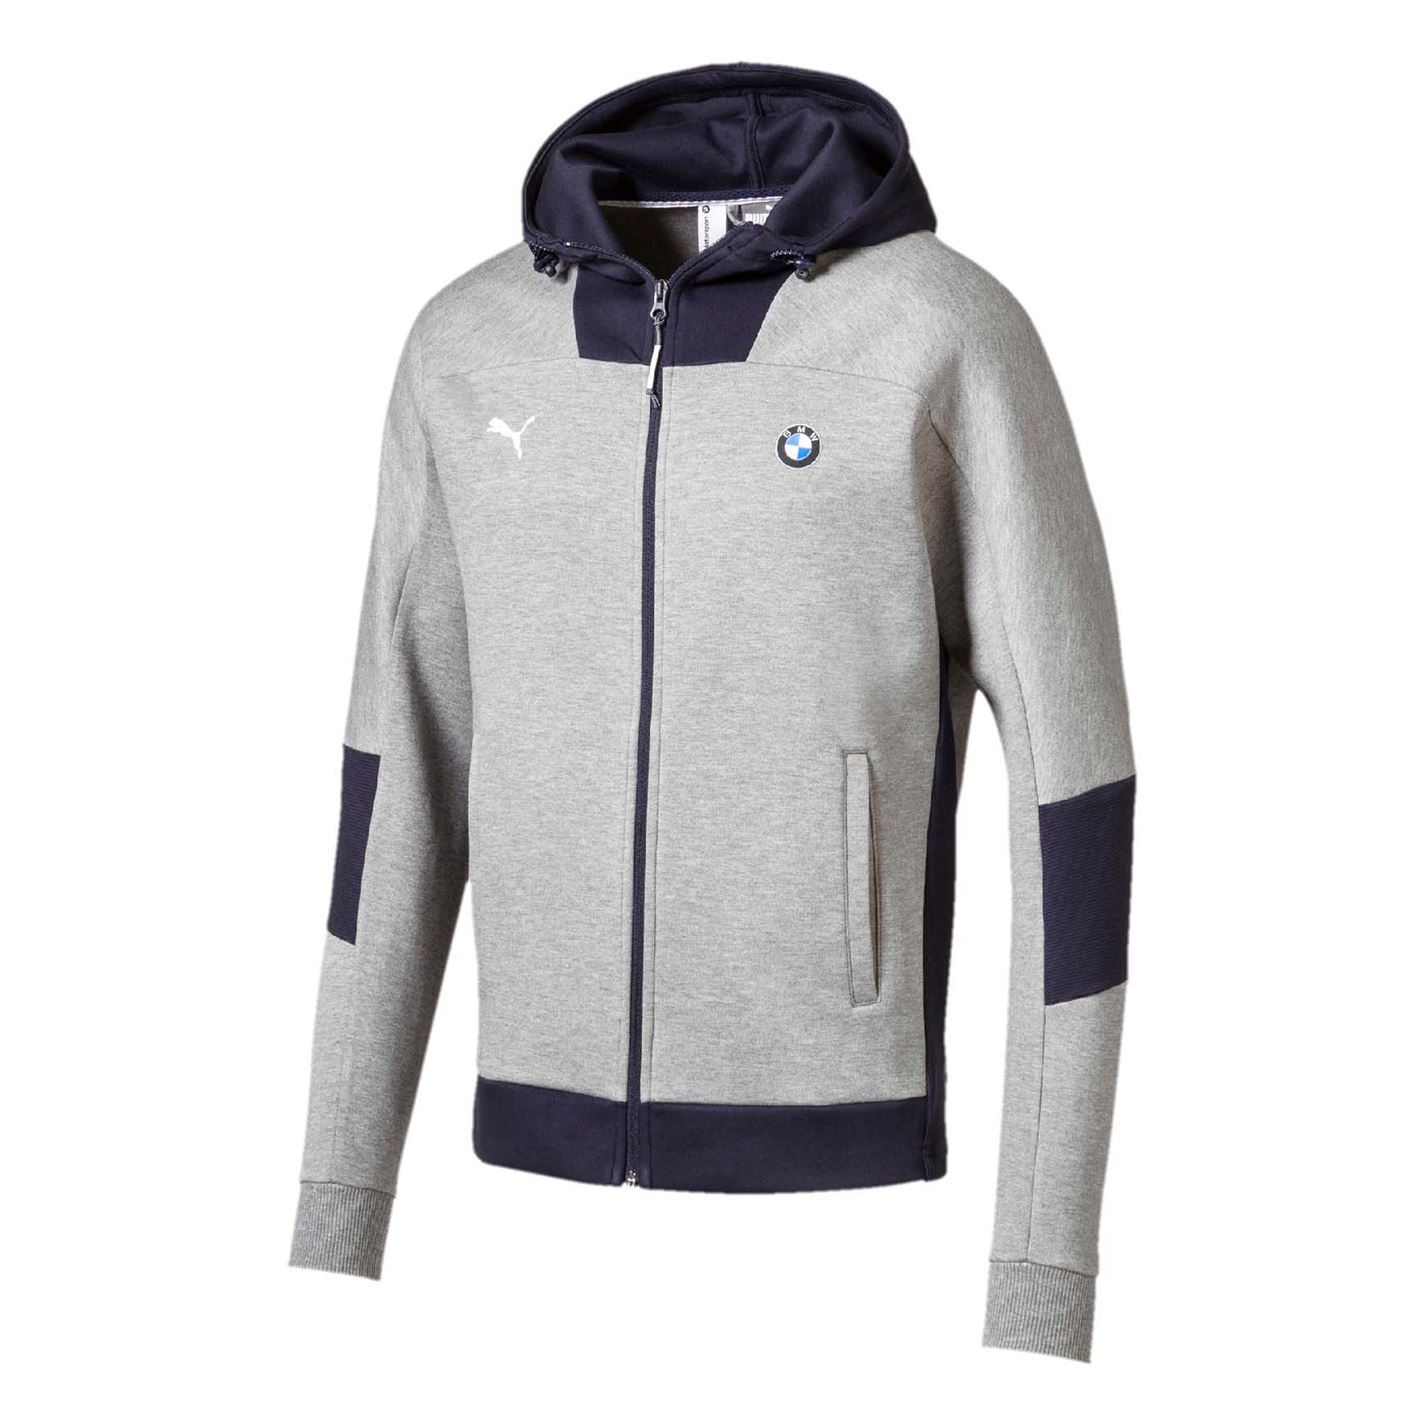 Details about Puma Mens BMW Full Zip Jacket Hoodie Coat Top Hoody Hooded  Long Sleeve Cotton 4fe0bfb8e23